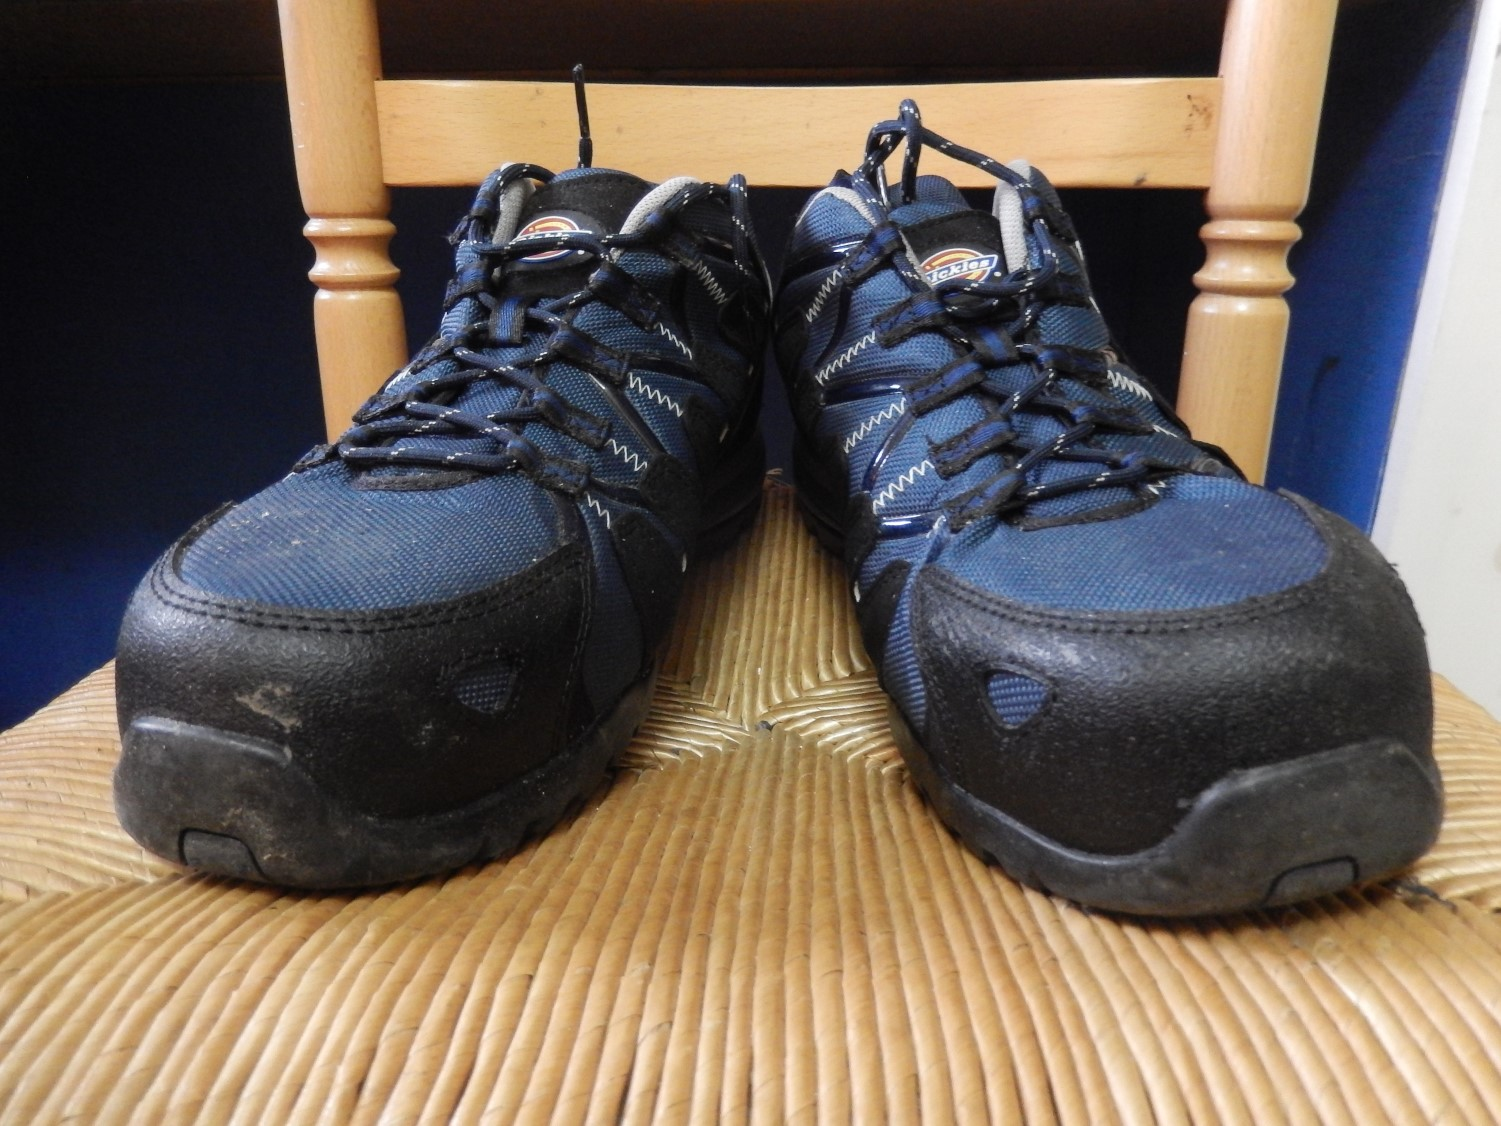 New Safety Boots – Olly Writes